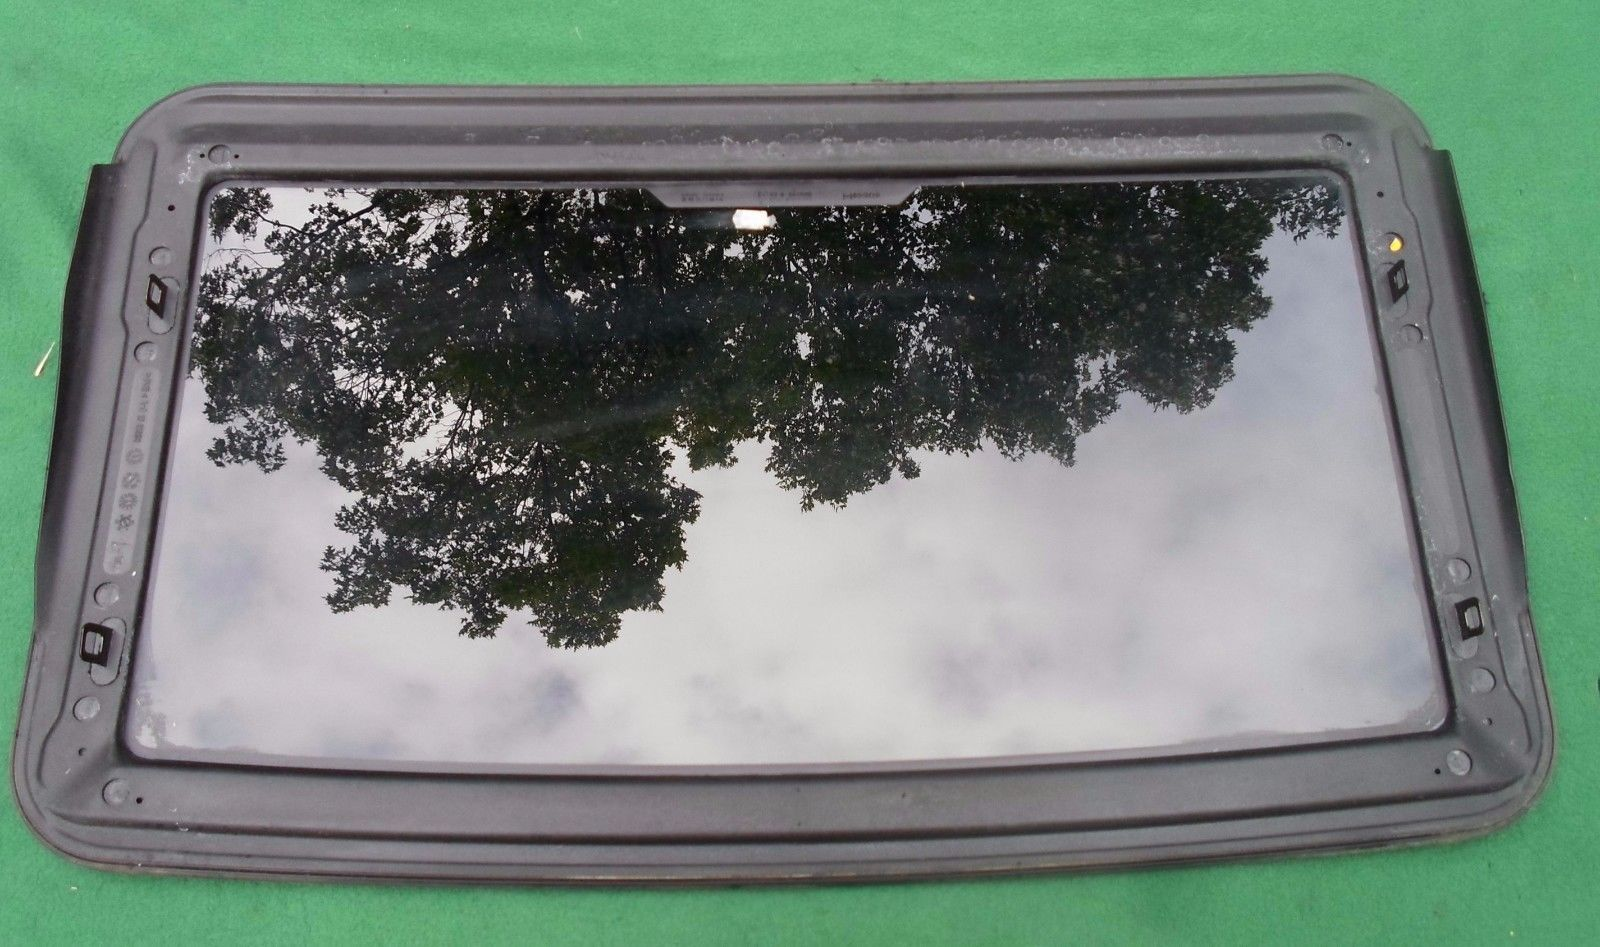 2004 JAGUAR XJ8 OEM SUNROOF GLASS NO ACCIDENT YEAR SPECIFIC FREE SHIPPING!